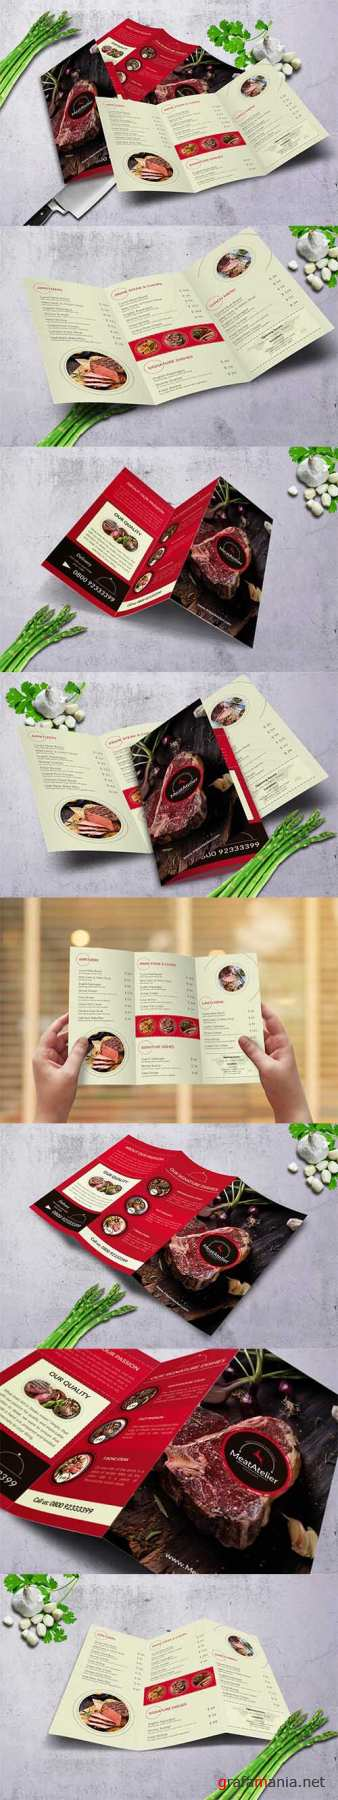 PSD Meat Atelier Trifold Food Menu A4 & US Letter